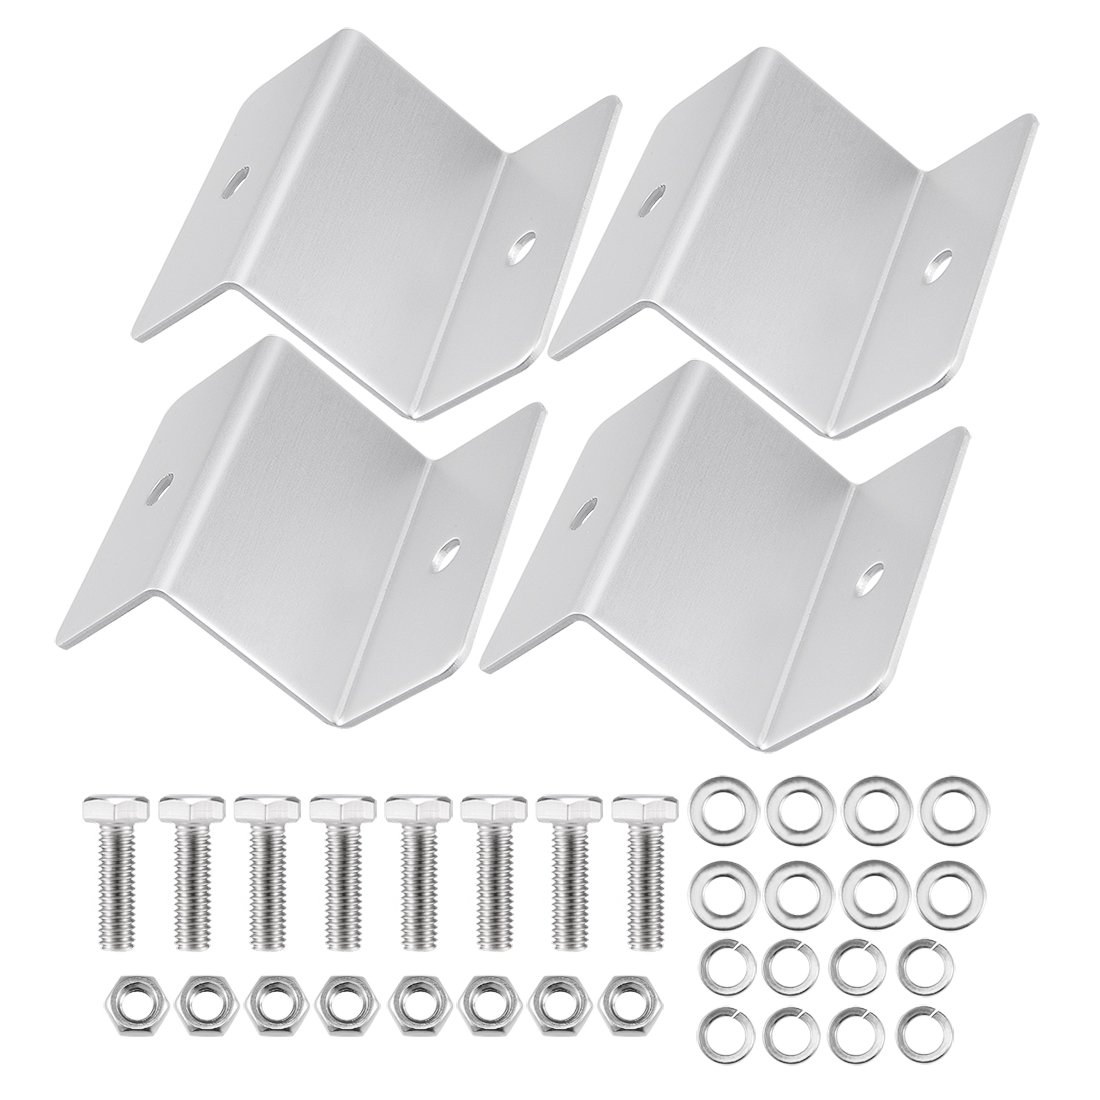 Sourcingmap ZB-01 Silver Tone Solar Panel Mounting Z Bracket Set for Yacht/Solar Panel a17091500ux0365